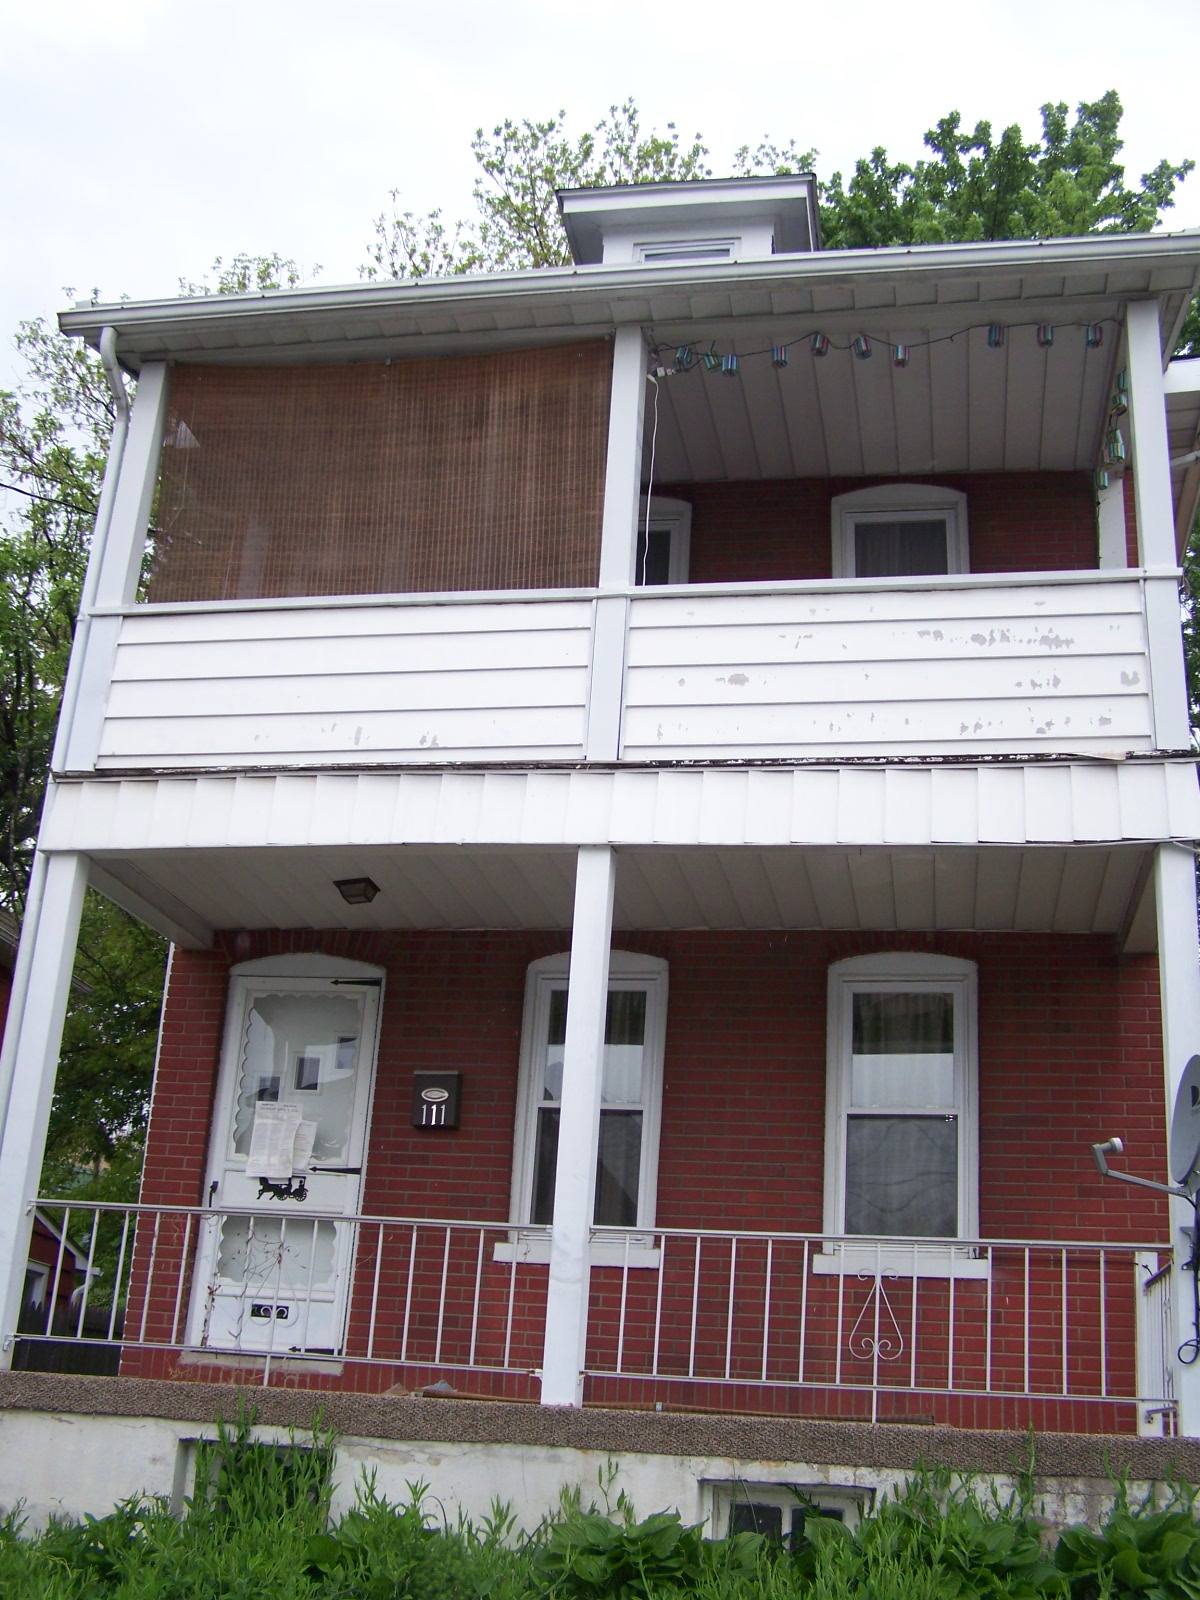 ForSaleByOwner (FSBO) home in Easton, PA at ForSaleByOwnerBuyersGuide.com